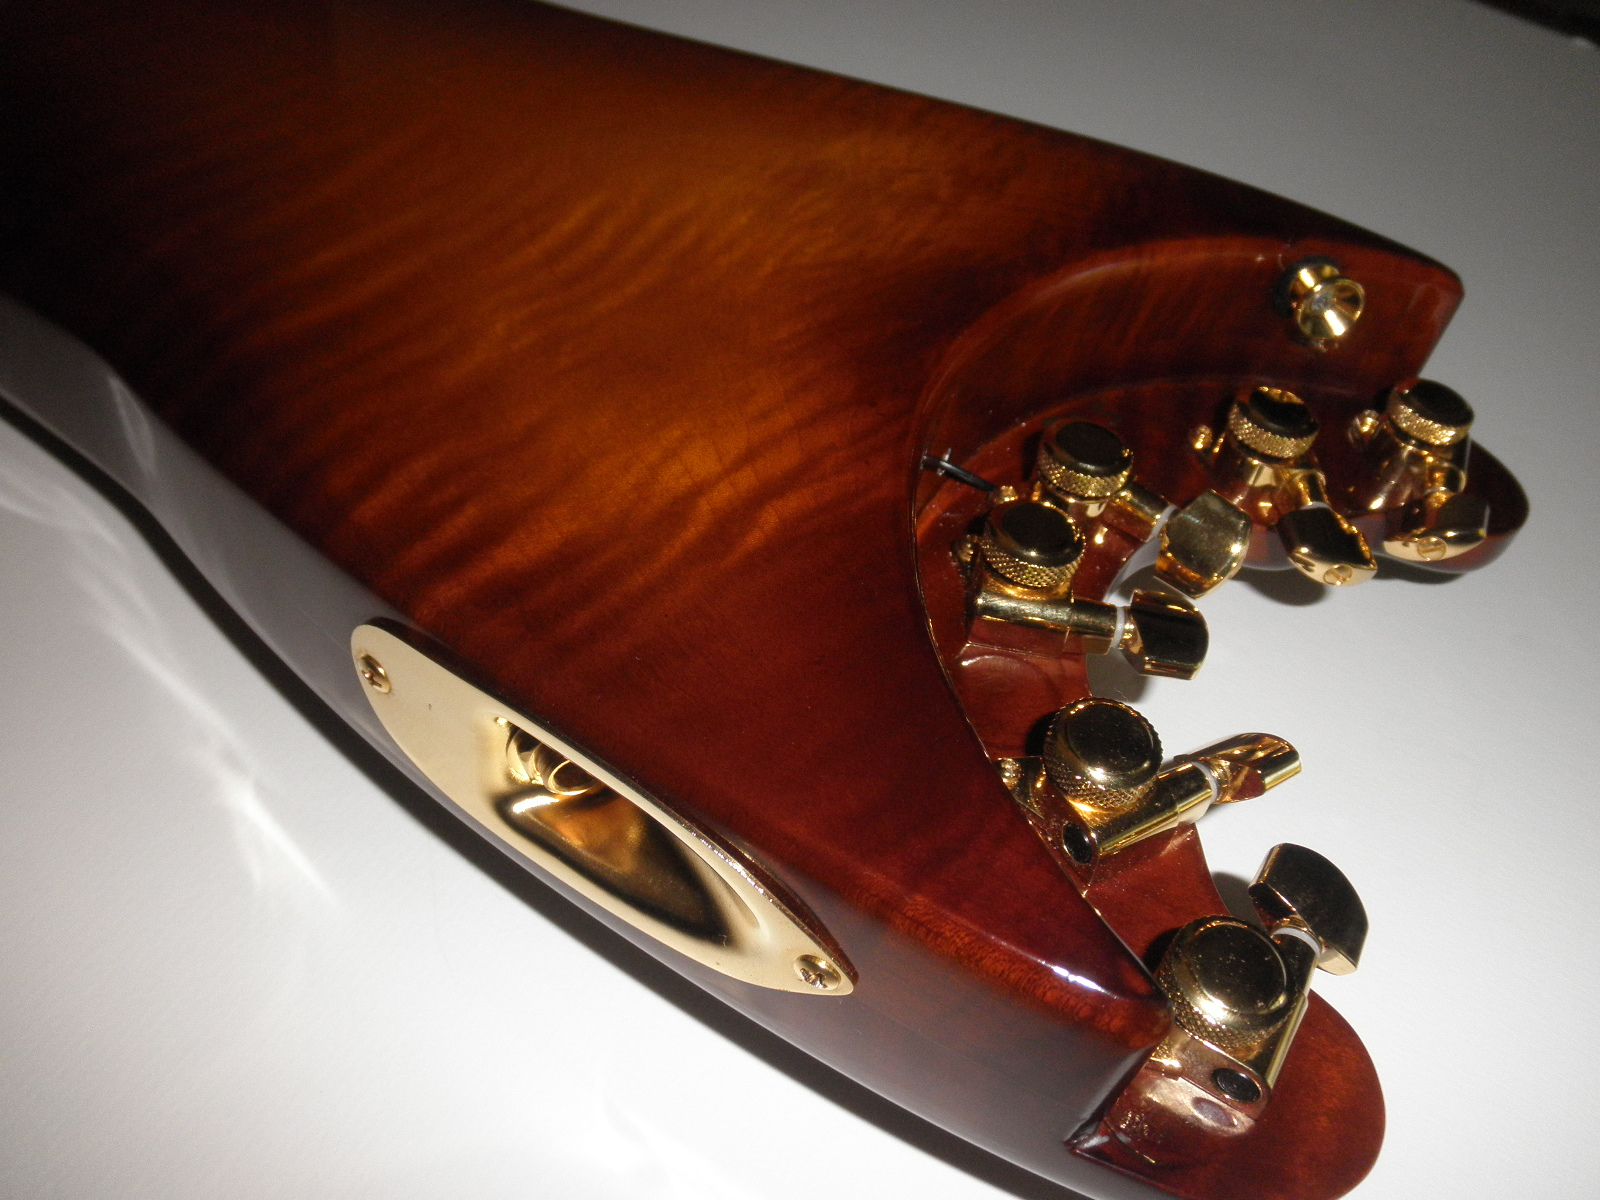 Flamey Maple back on HoneyBurst STROBELCASTER Custom Travel Guitar